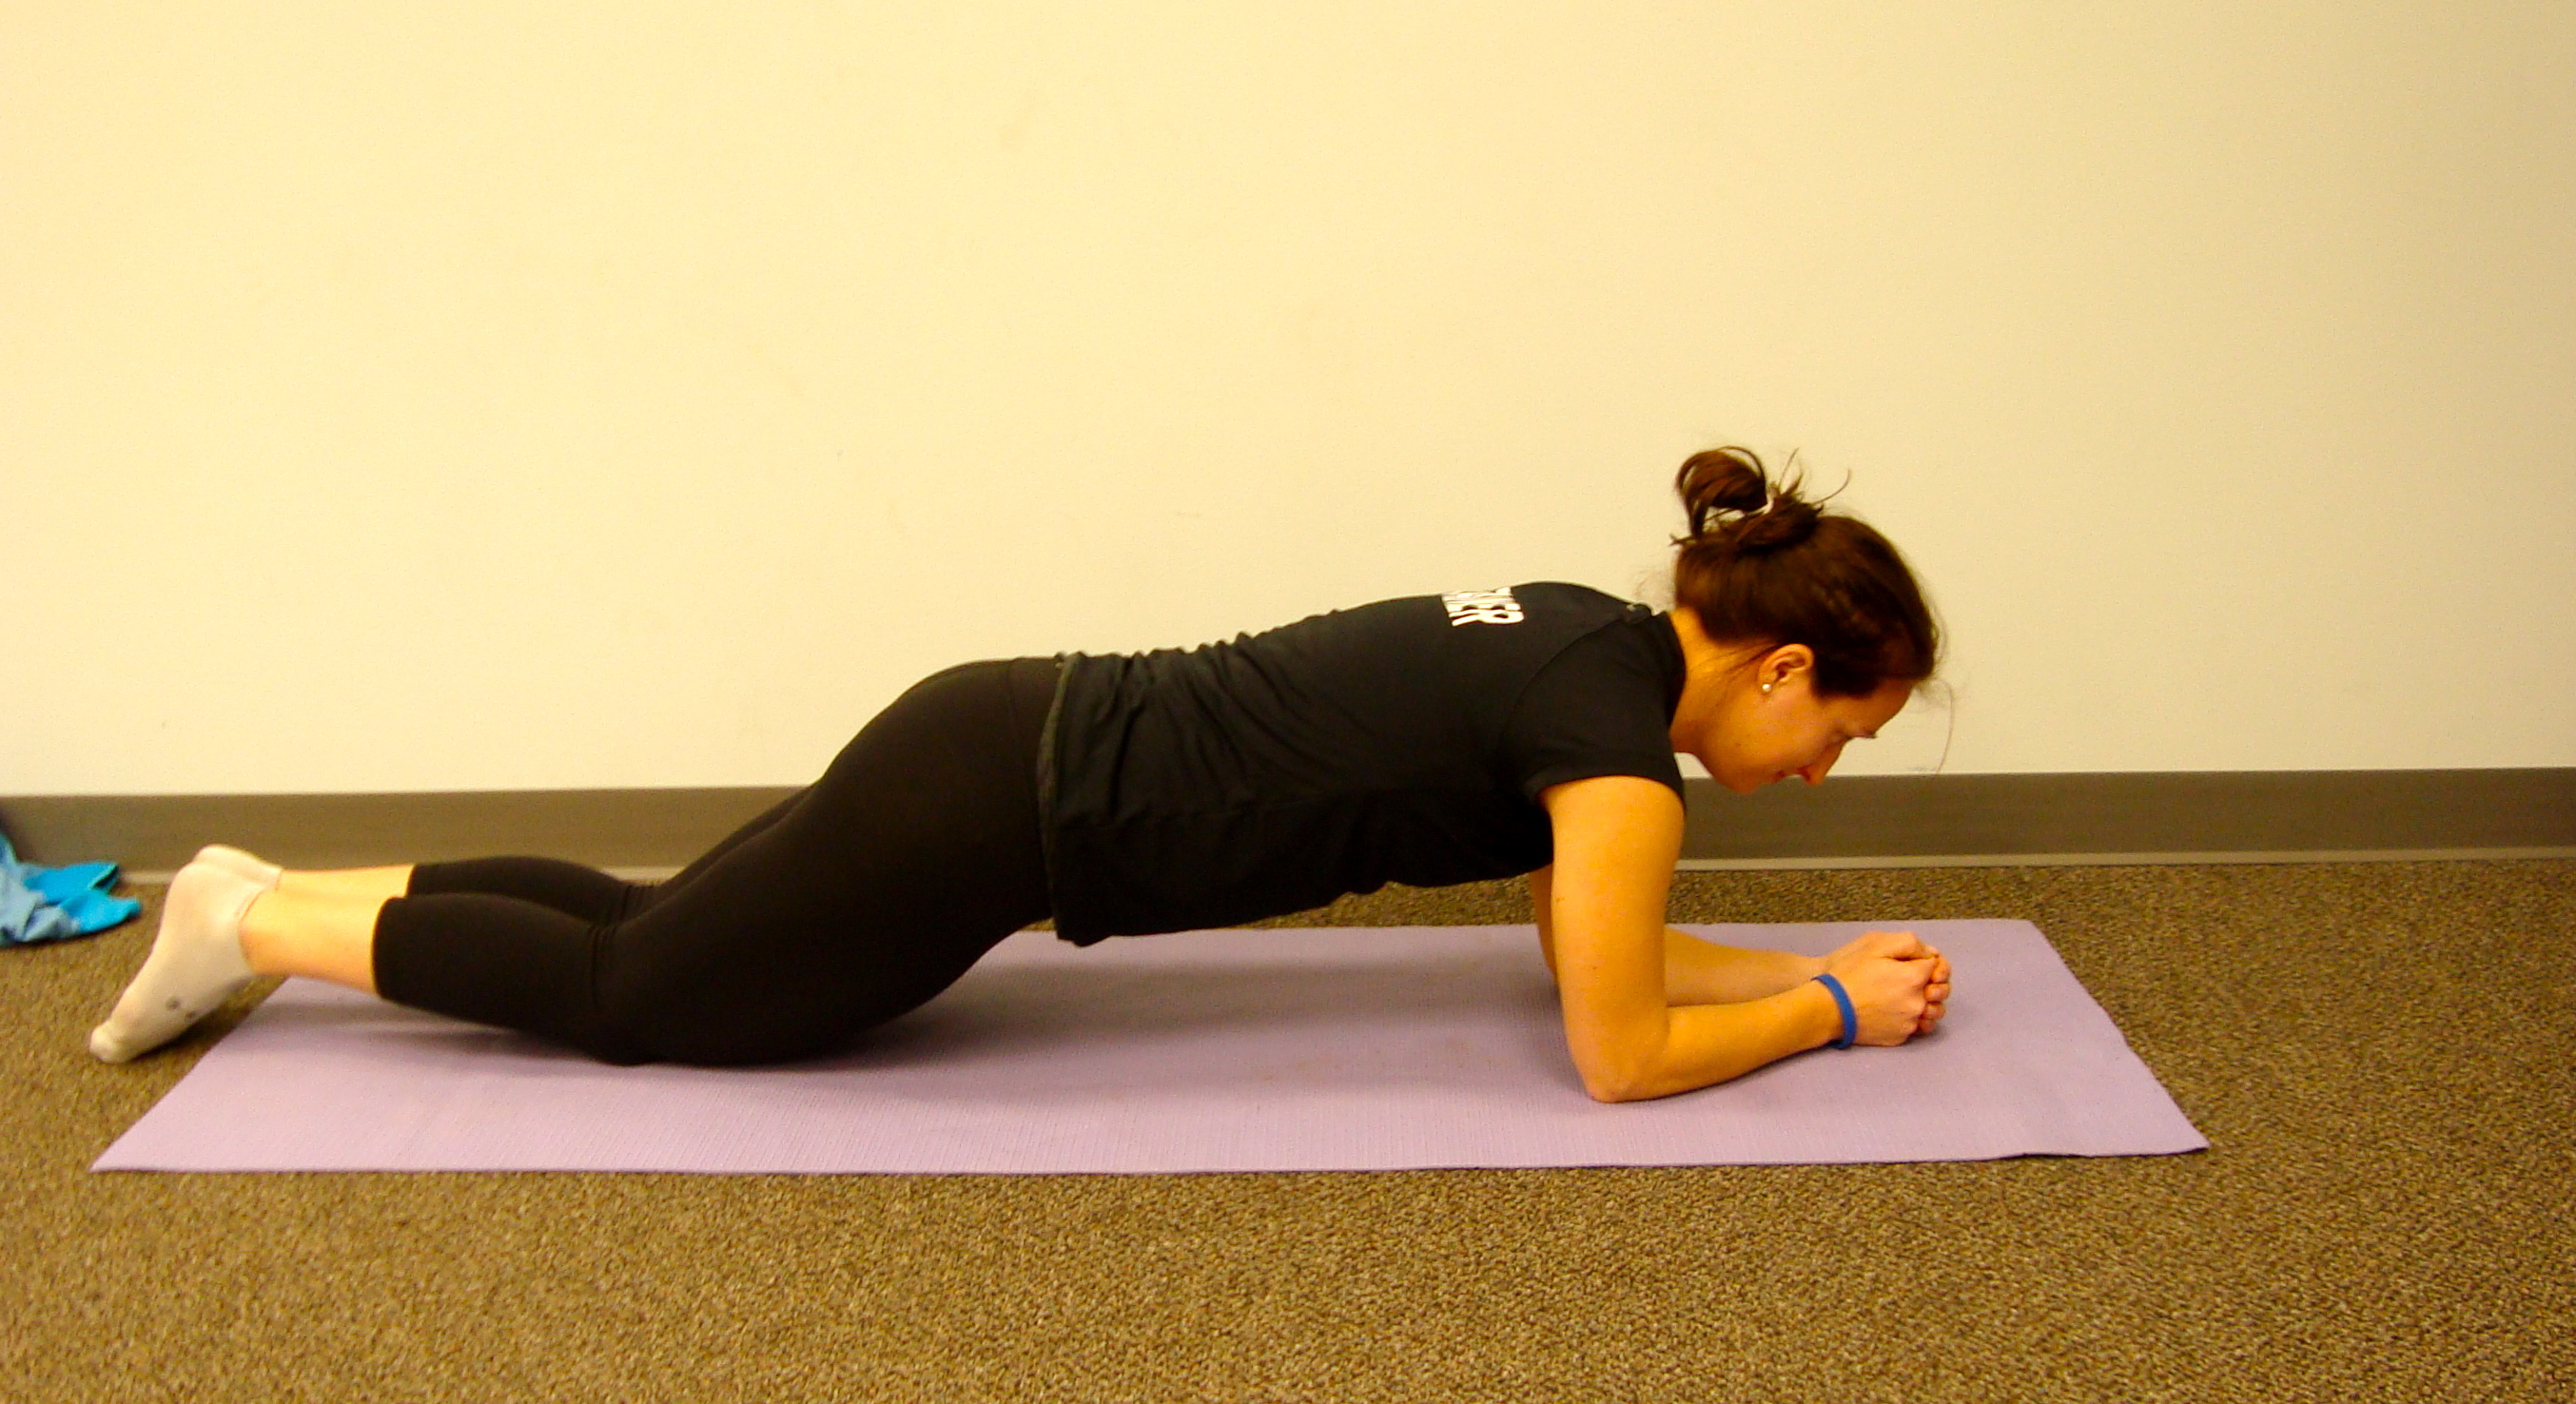 Plank on knees - Start higher if you are having a hard time holding a plank on your toes